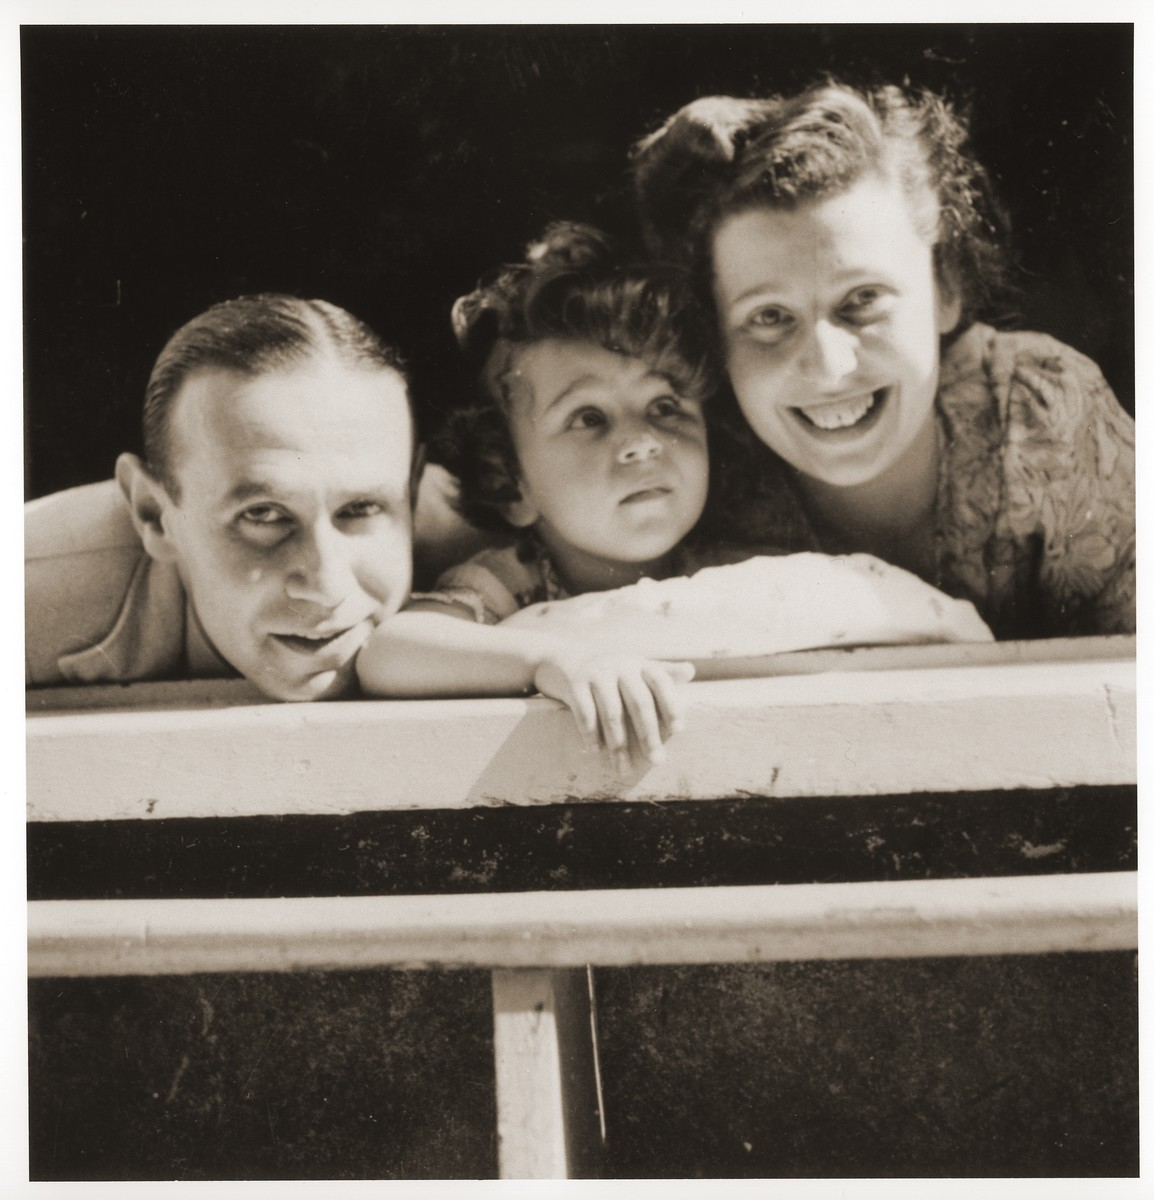 Two-year-old Lore Baer with her parents, Ernst and Edith Baer in their home in Amsterdam.